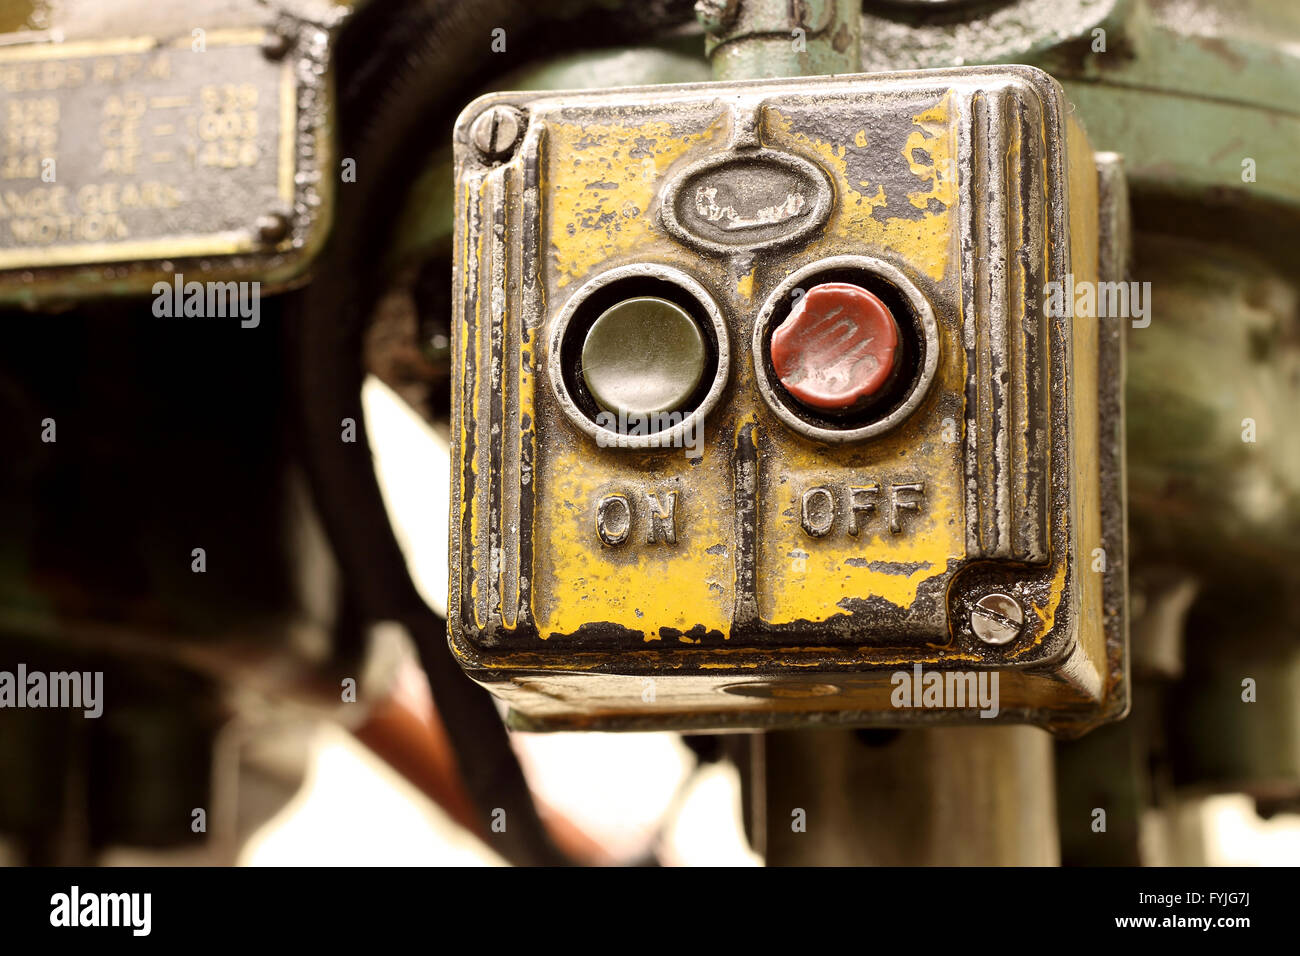 Industrial switch - Stock Image